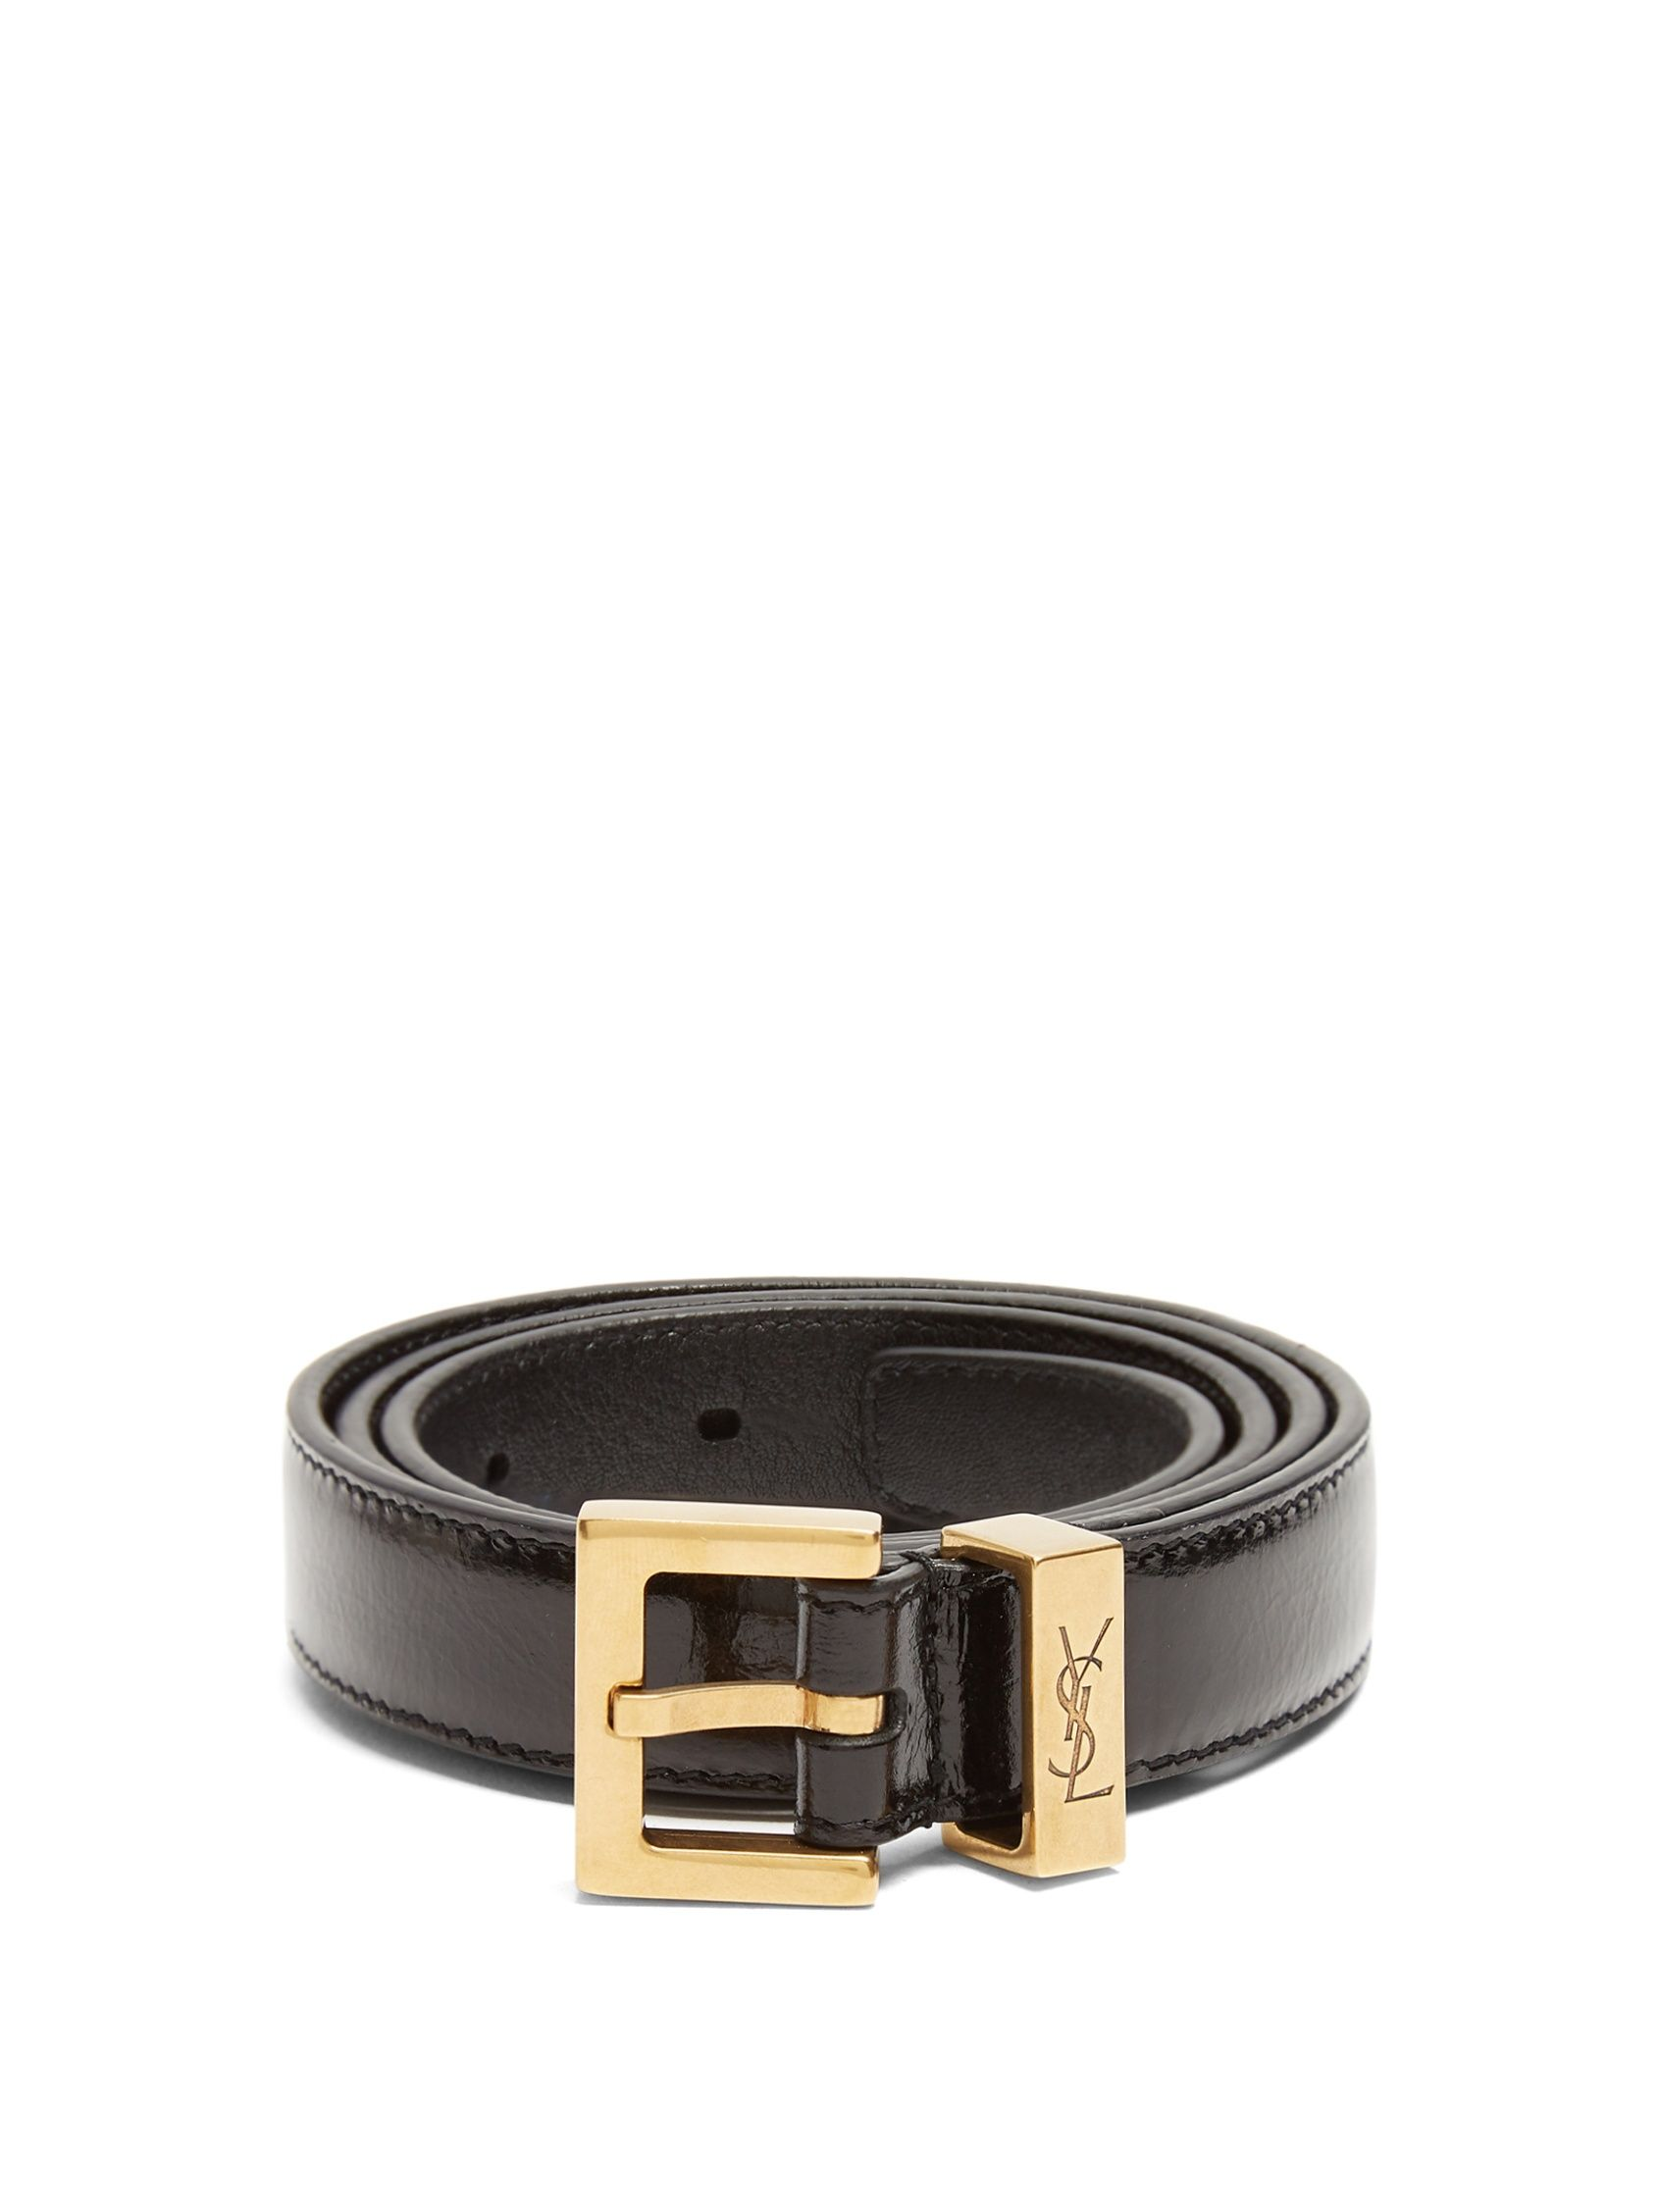 eee664aaee0 Click here to buy Saint Laurent Monogram Passant leather belt at  MATCHESFASHION.COM